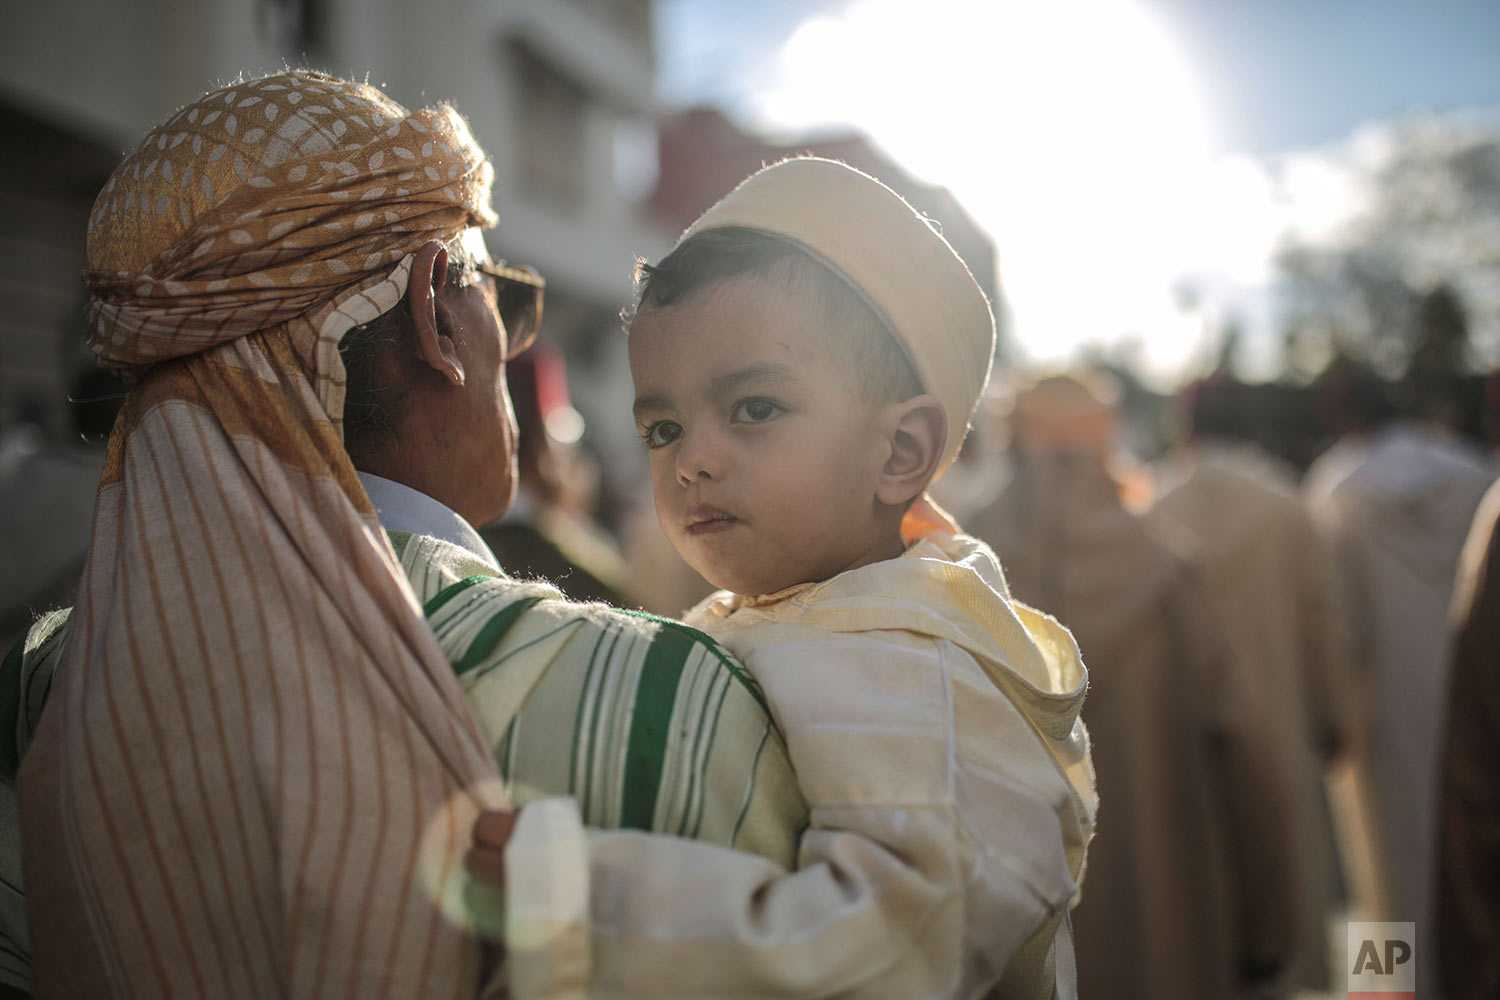 In this Thursday Nov. 30, 2017 photo, people take part in an annual parade celebrating the birth anniversary of Prophet Muhammad, in Sale, near Rabat, Morocco. A large parade with historic roots takes place in the Moroccan city of Sale each year to mark the birth of Prophet Muhammad, an occasion Muslims around the world observe as Mawlid an-Nabi. (AP Photo/Mosa'ab Elshamy)